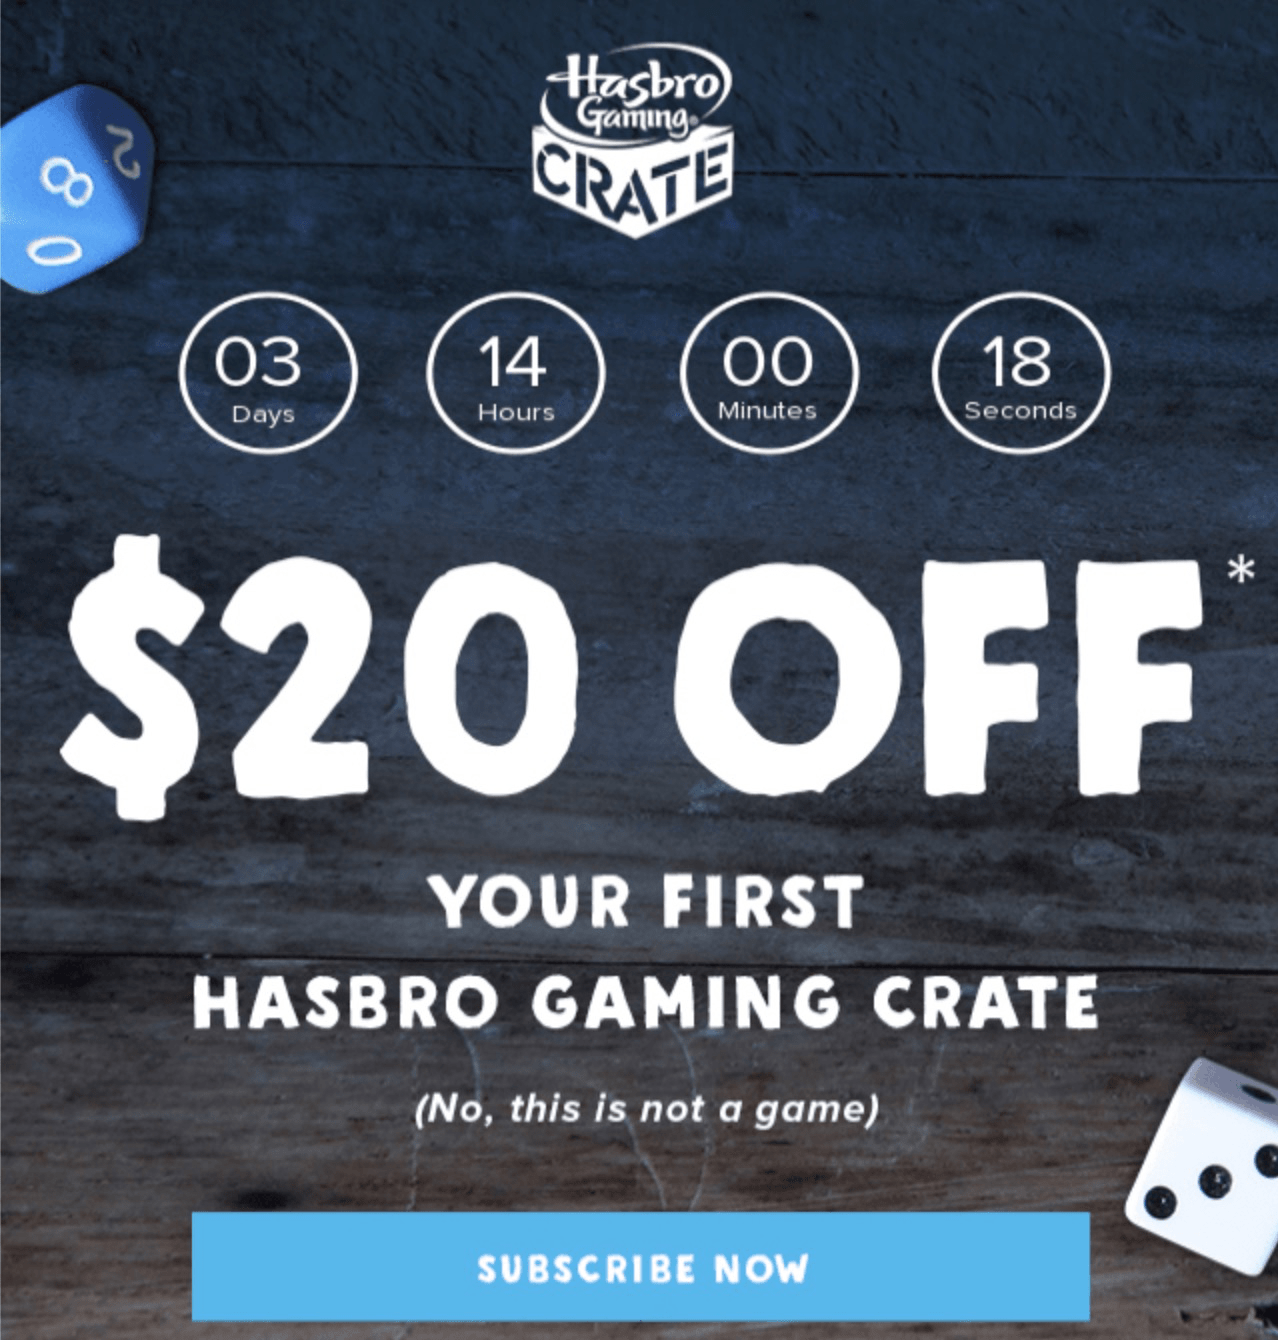 Hasbro Gaming Crate Coupon: Save $20 On First Box!